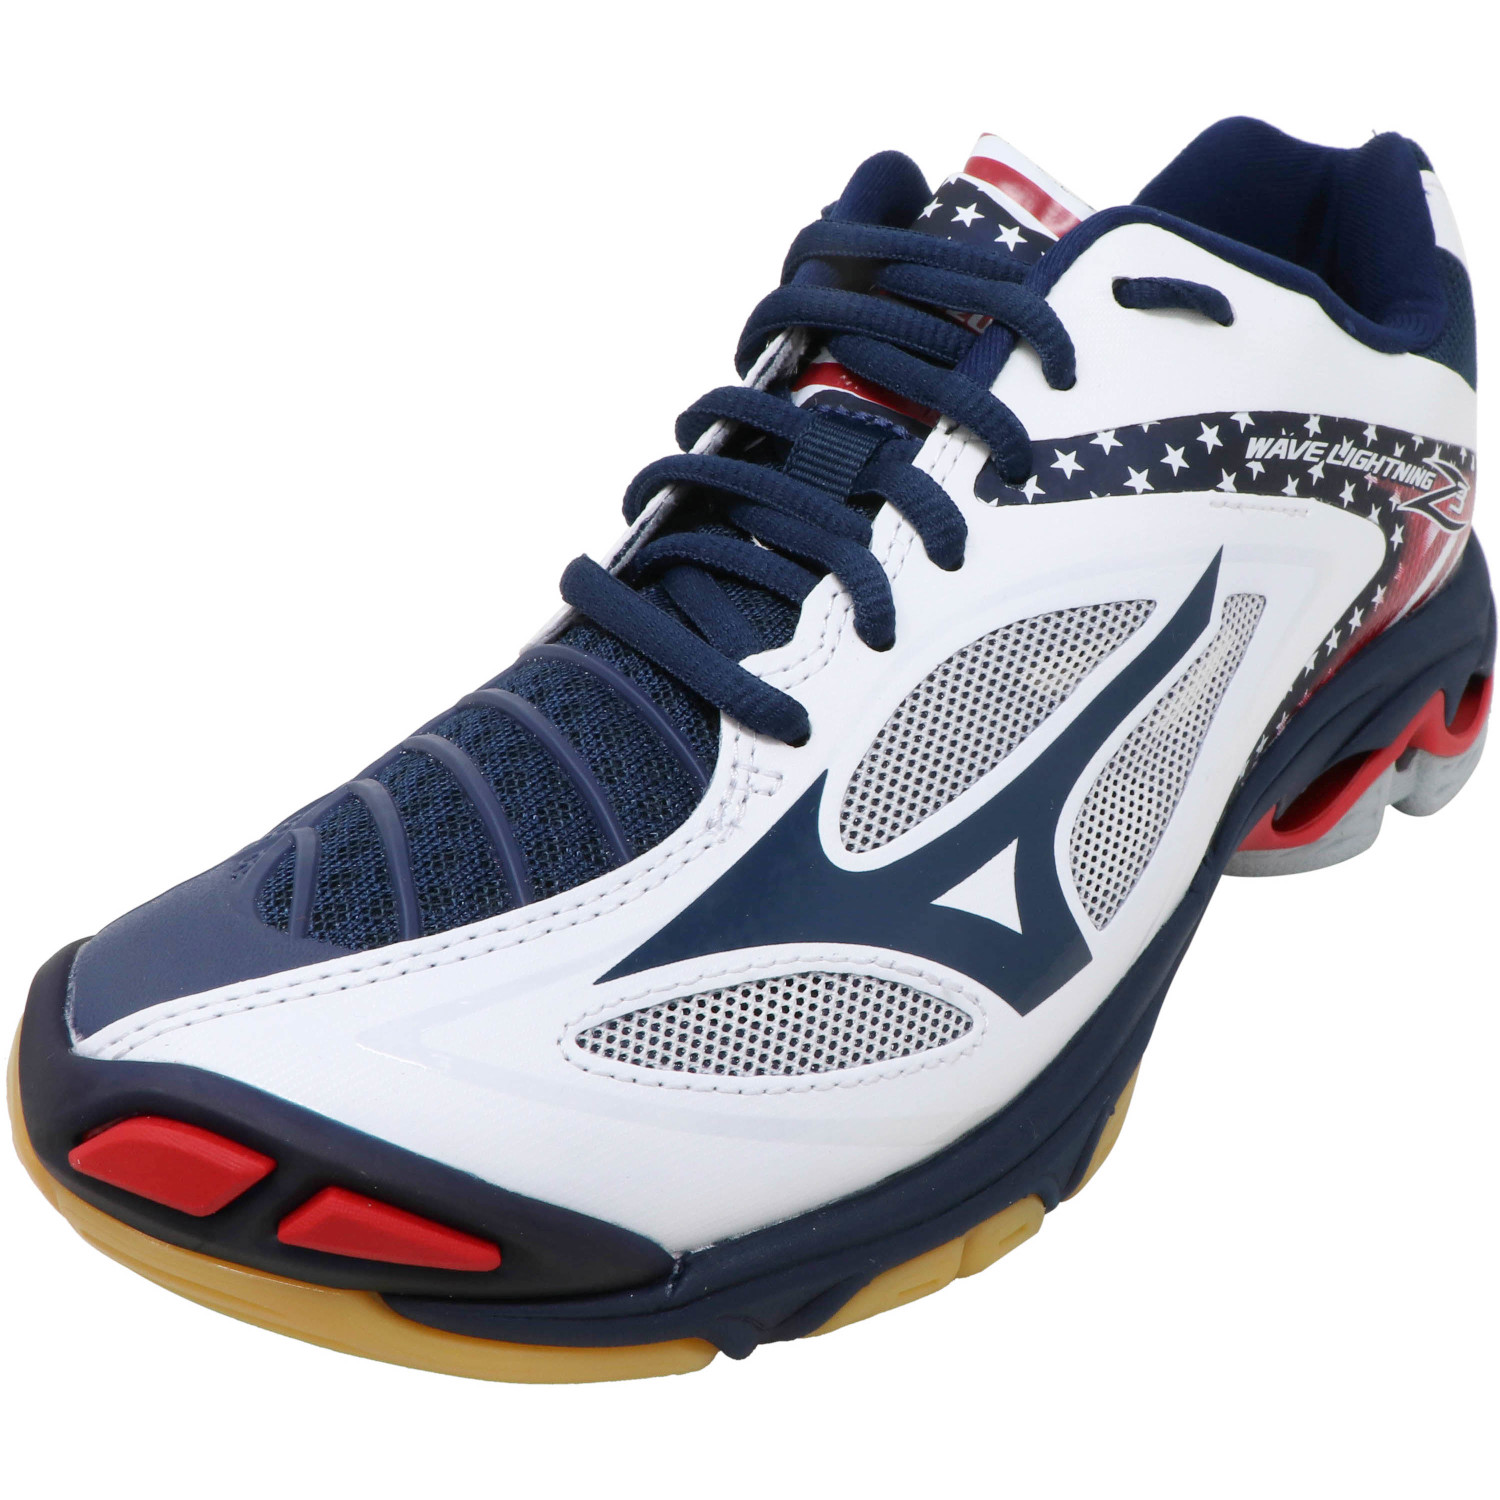 mizuno womens volleyball shoes size 8 x 3 inch measure video